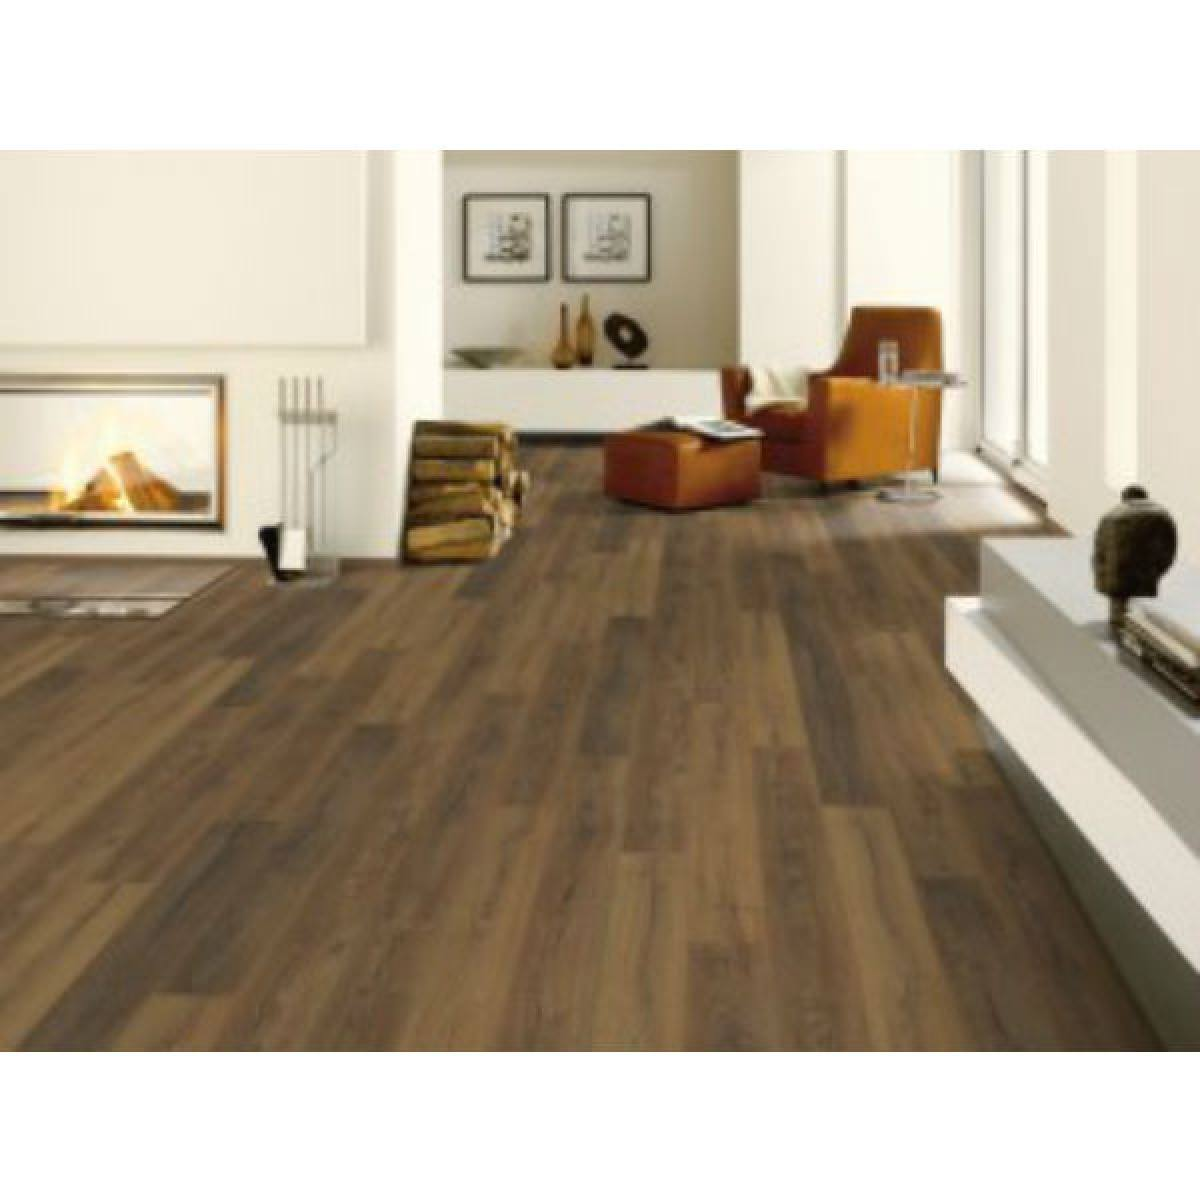 Canadia 11mm Woodgrain Laminate Flooring